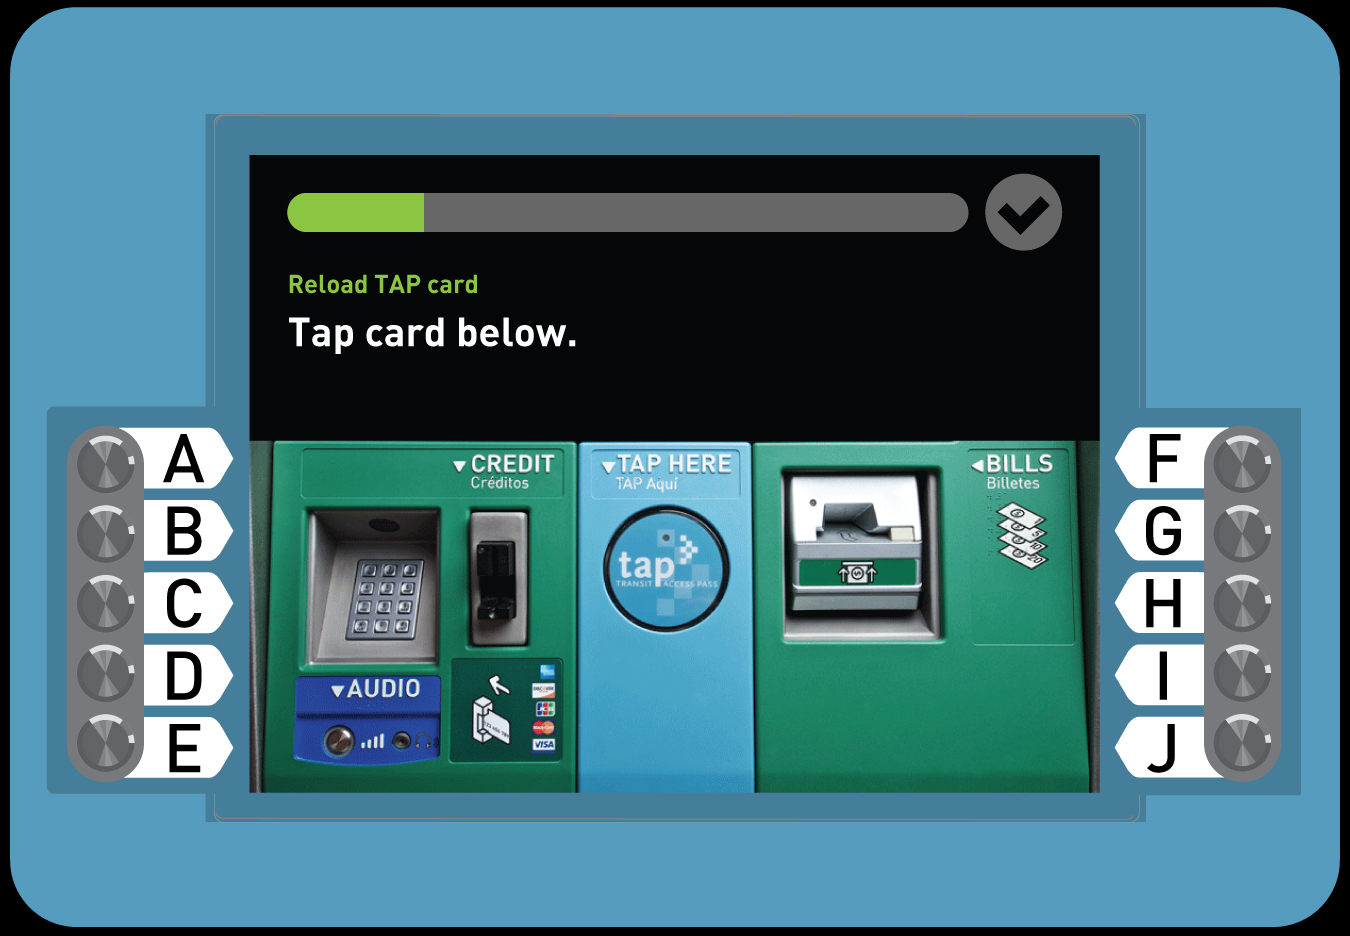 <p>3. How to Load Senior TAP card with 1-Way Fare</p>